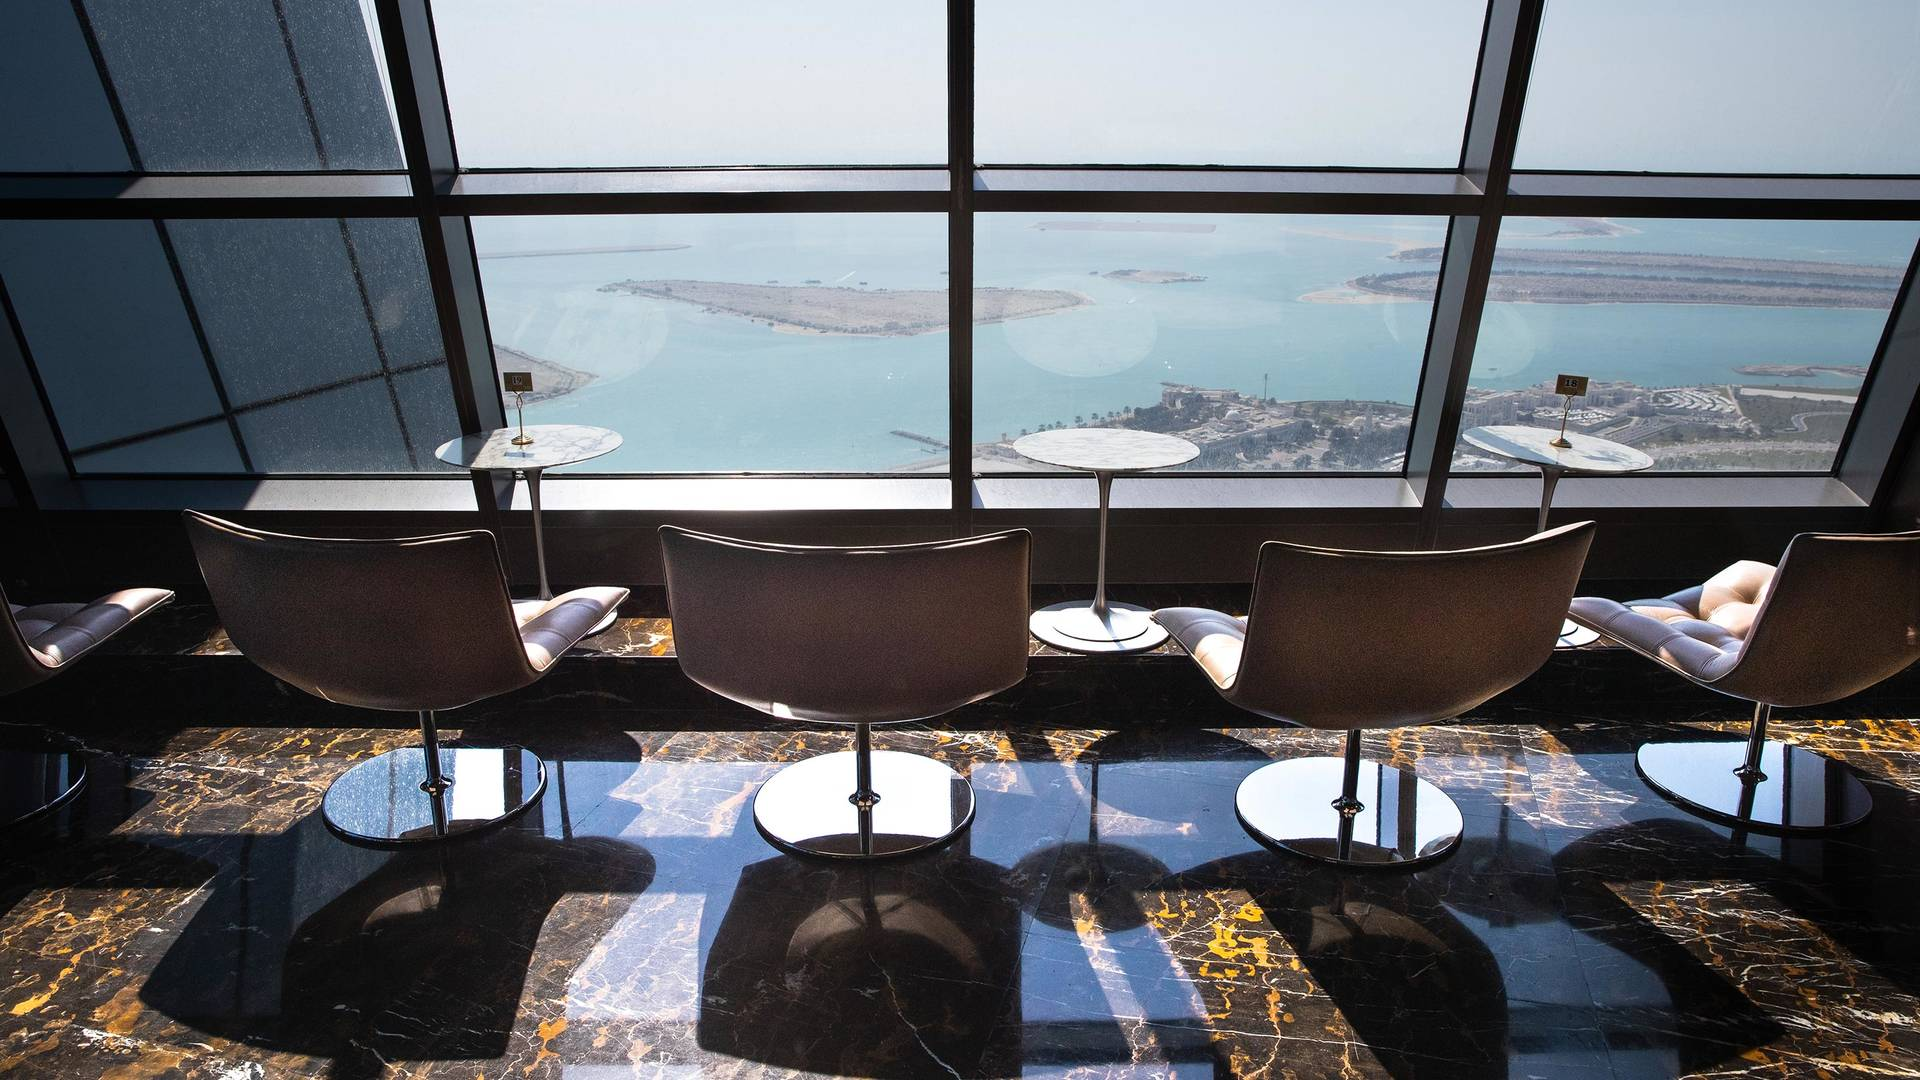 Observation deck at Jumeirah Etihad Towers